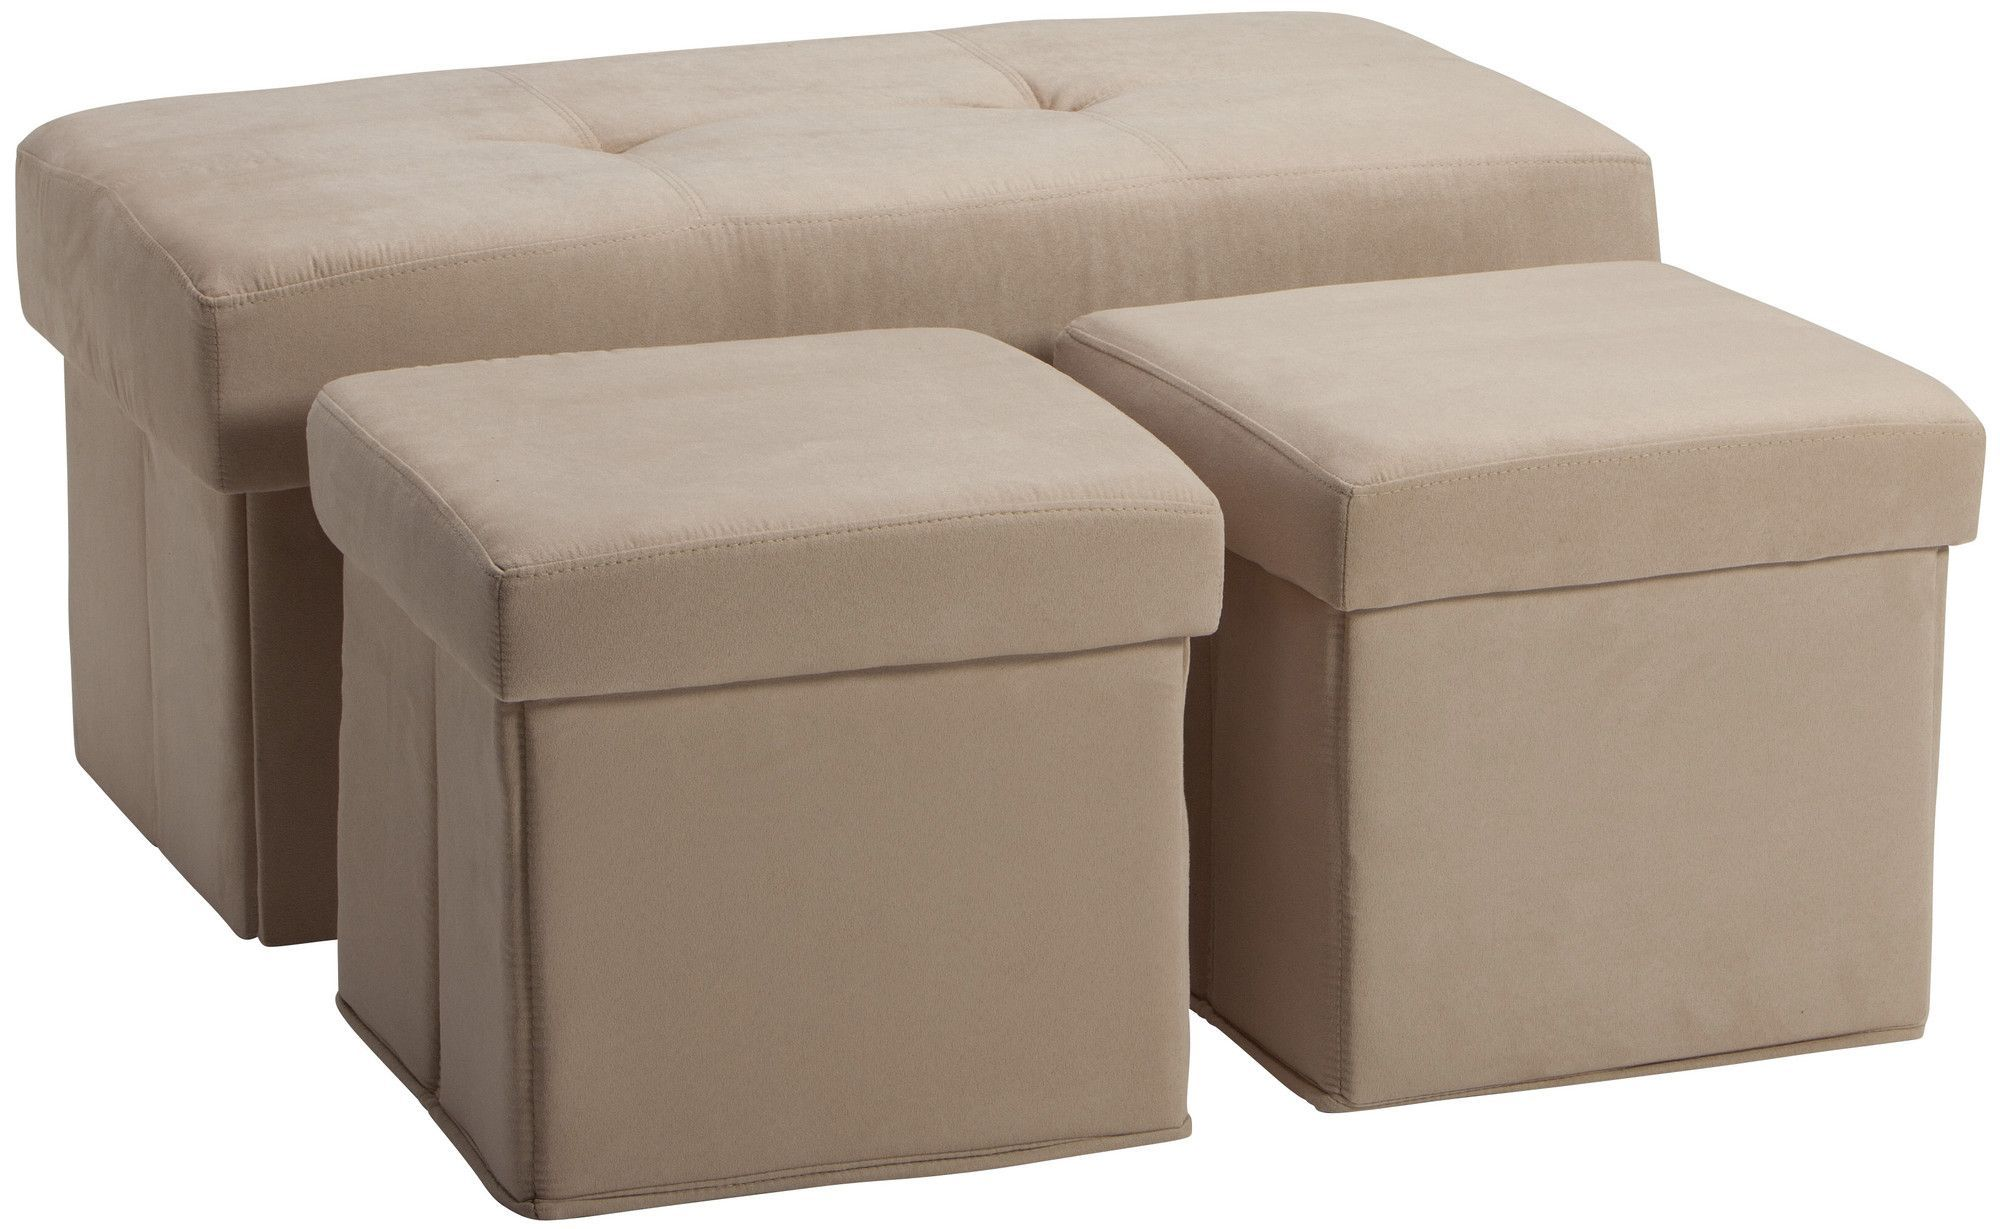 Surprising 3 Piece Storage Ottoman Set Home Decor Ottoman Table Gmtry Best Dining Table And Chair Ideas Images Gmtryco